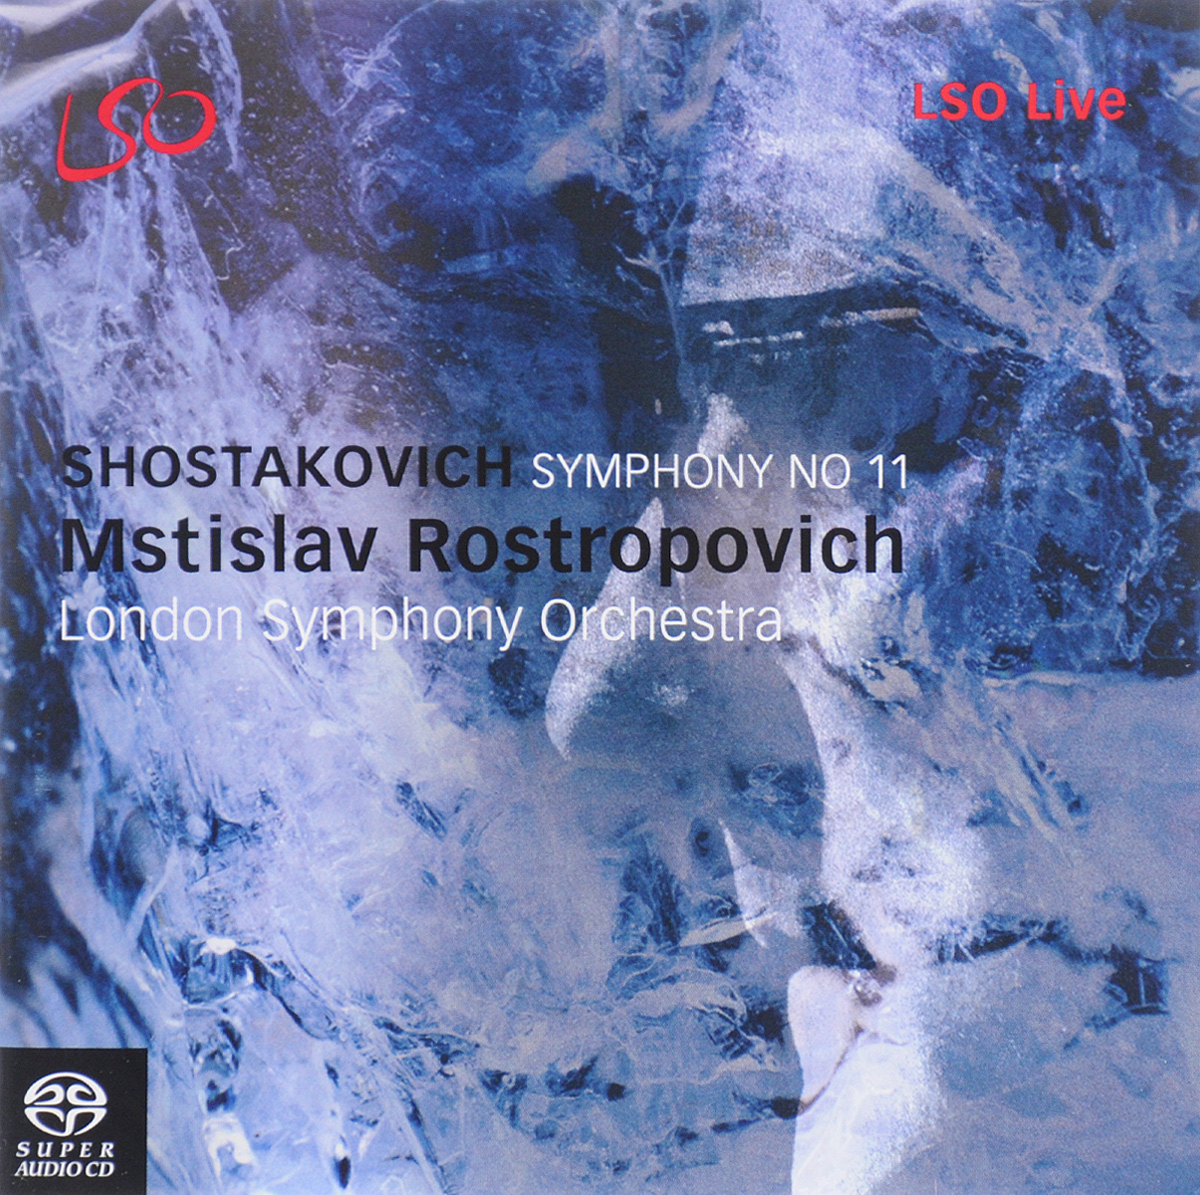 Мстислав Ростропович Mstislav Rostropovich. Shostakovich. Symphony No. 11 (SACD) 2017 new 30pcs set car tie clips organizer drop adhesive clamp wire cord clip cable holder